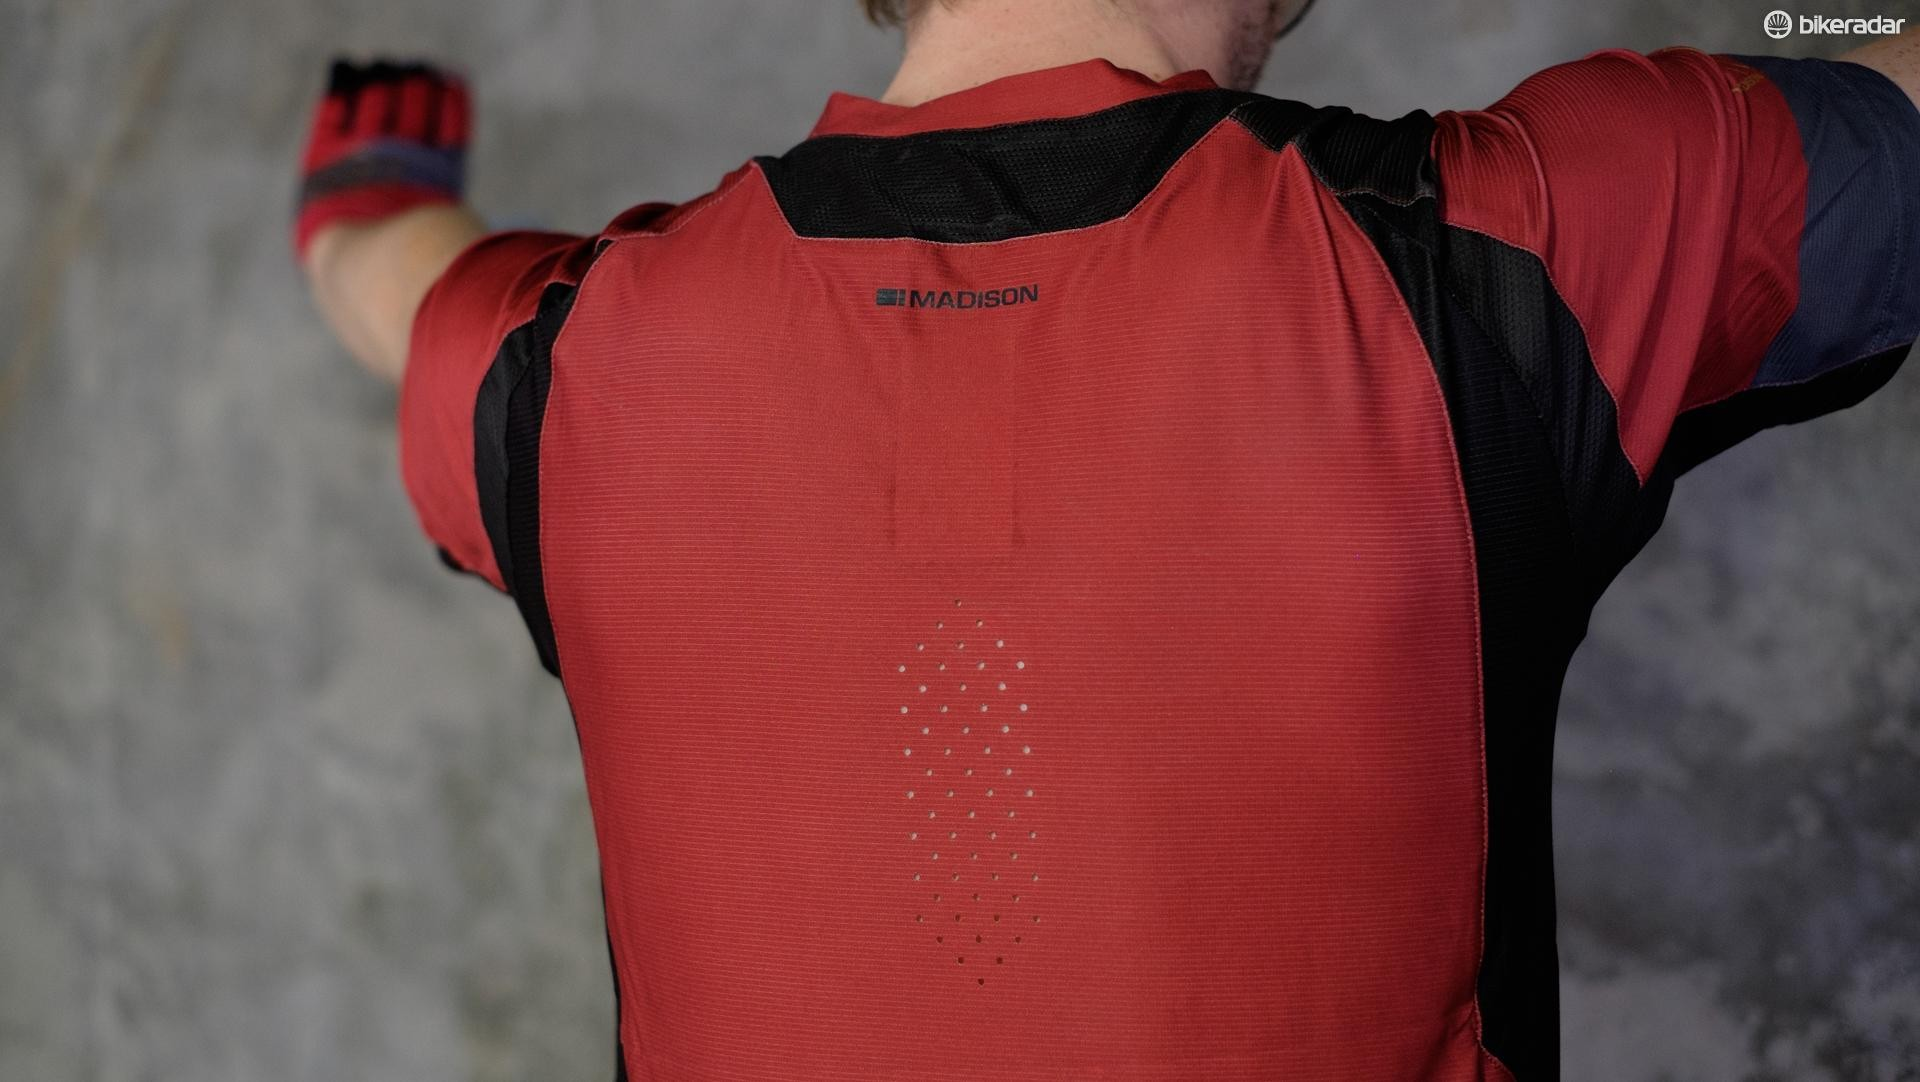 The vented section at the rear of the jersey looks like it'll be useful for when the going gets hot